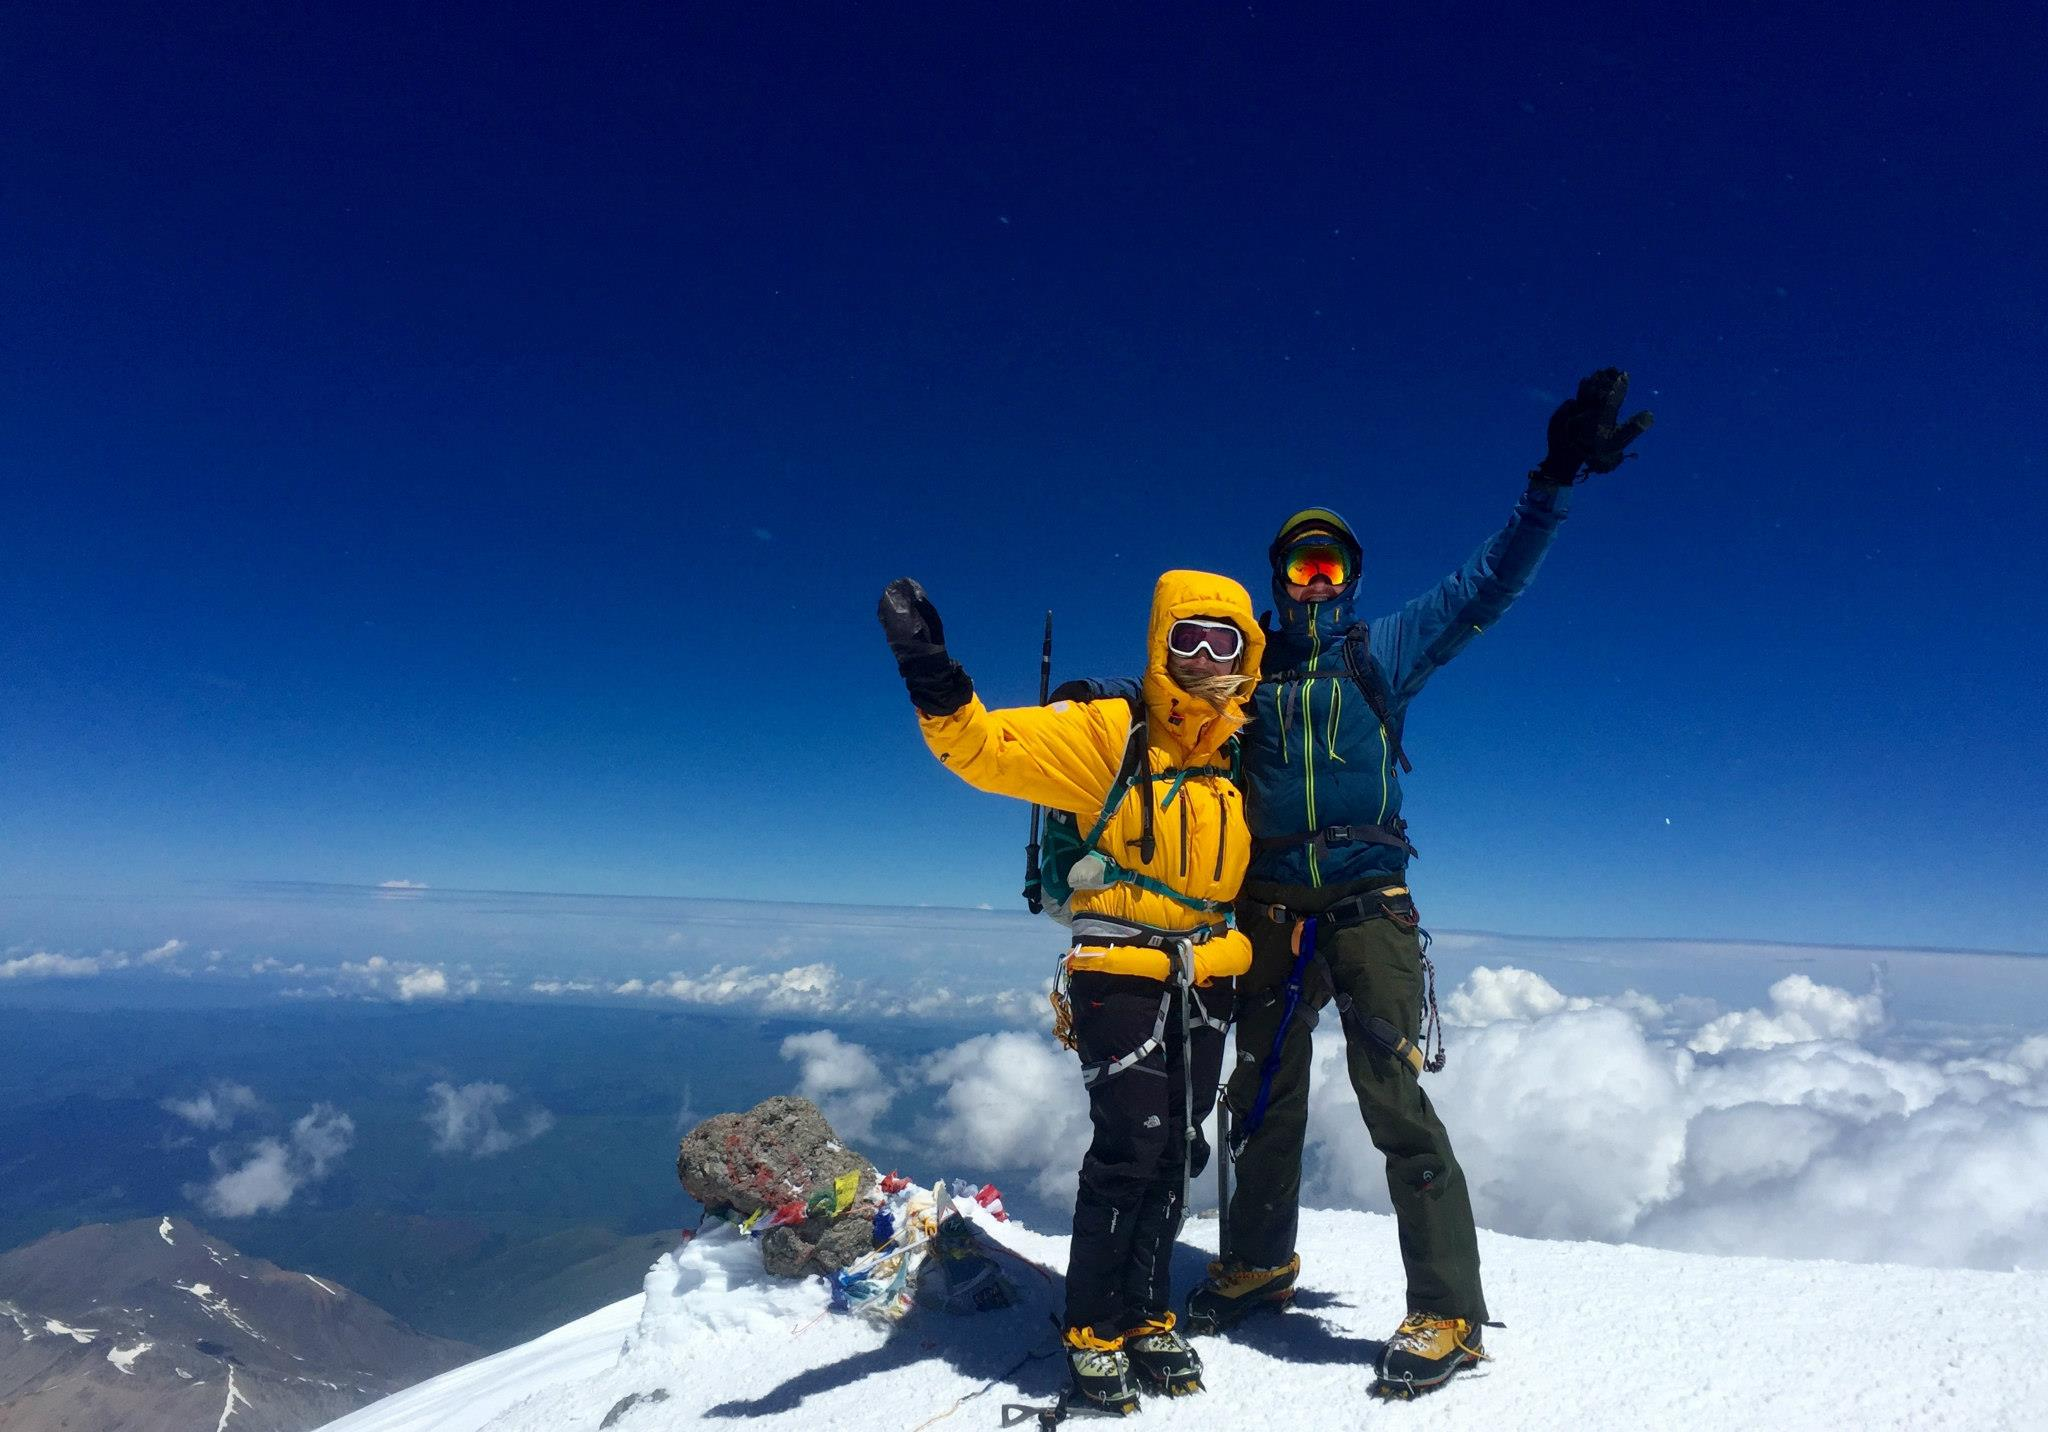 Elizabeth & Pete at the summit of Mount Elbrus - Russia's highest mountain